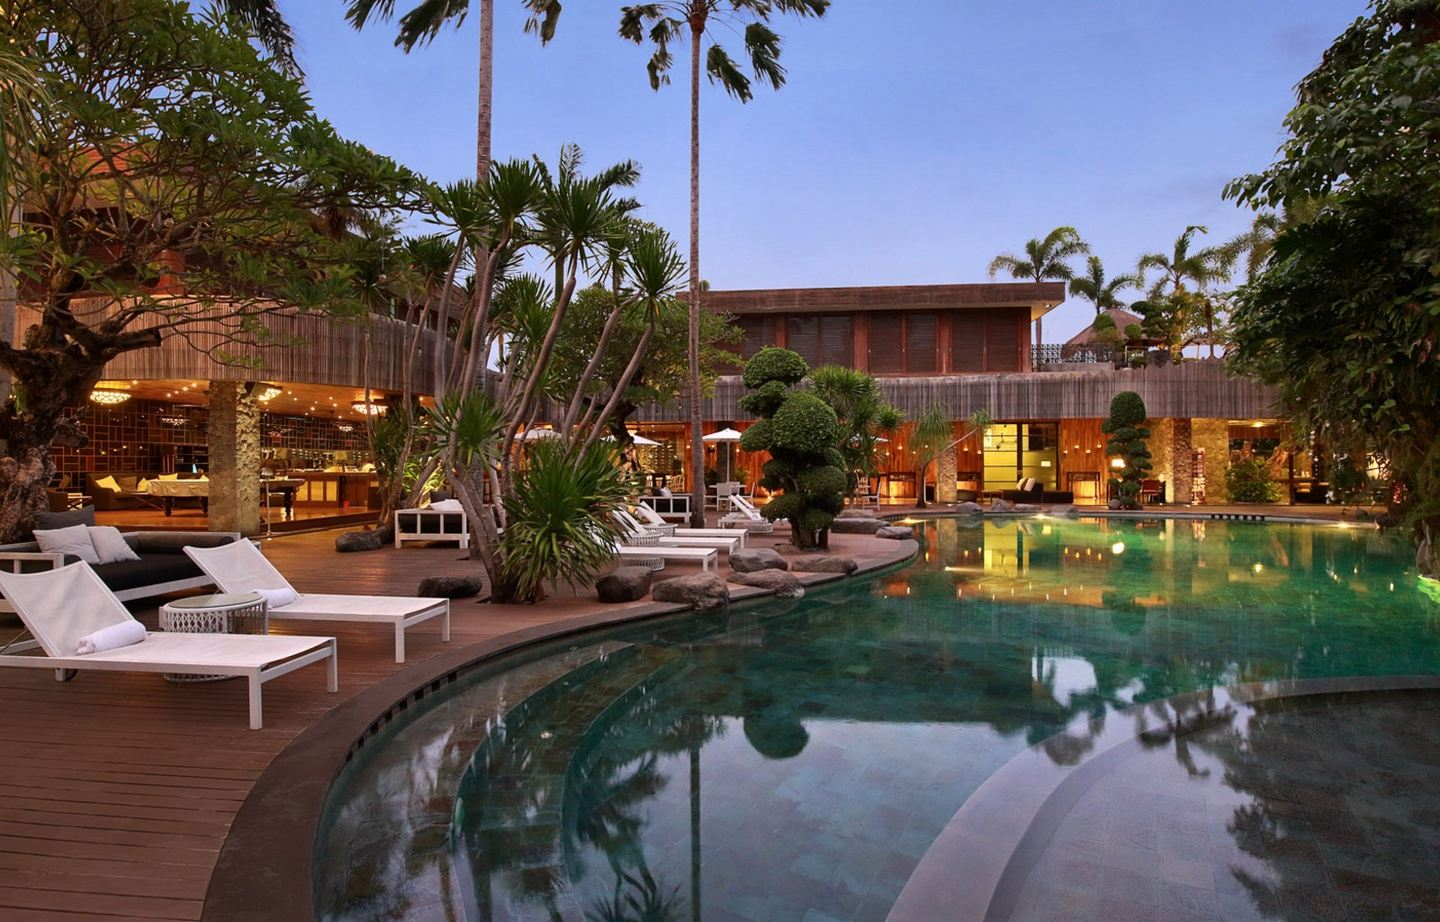 Bali - Seminyak Awesome 7 Days Paradise Fitness Escape